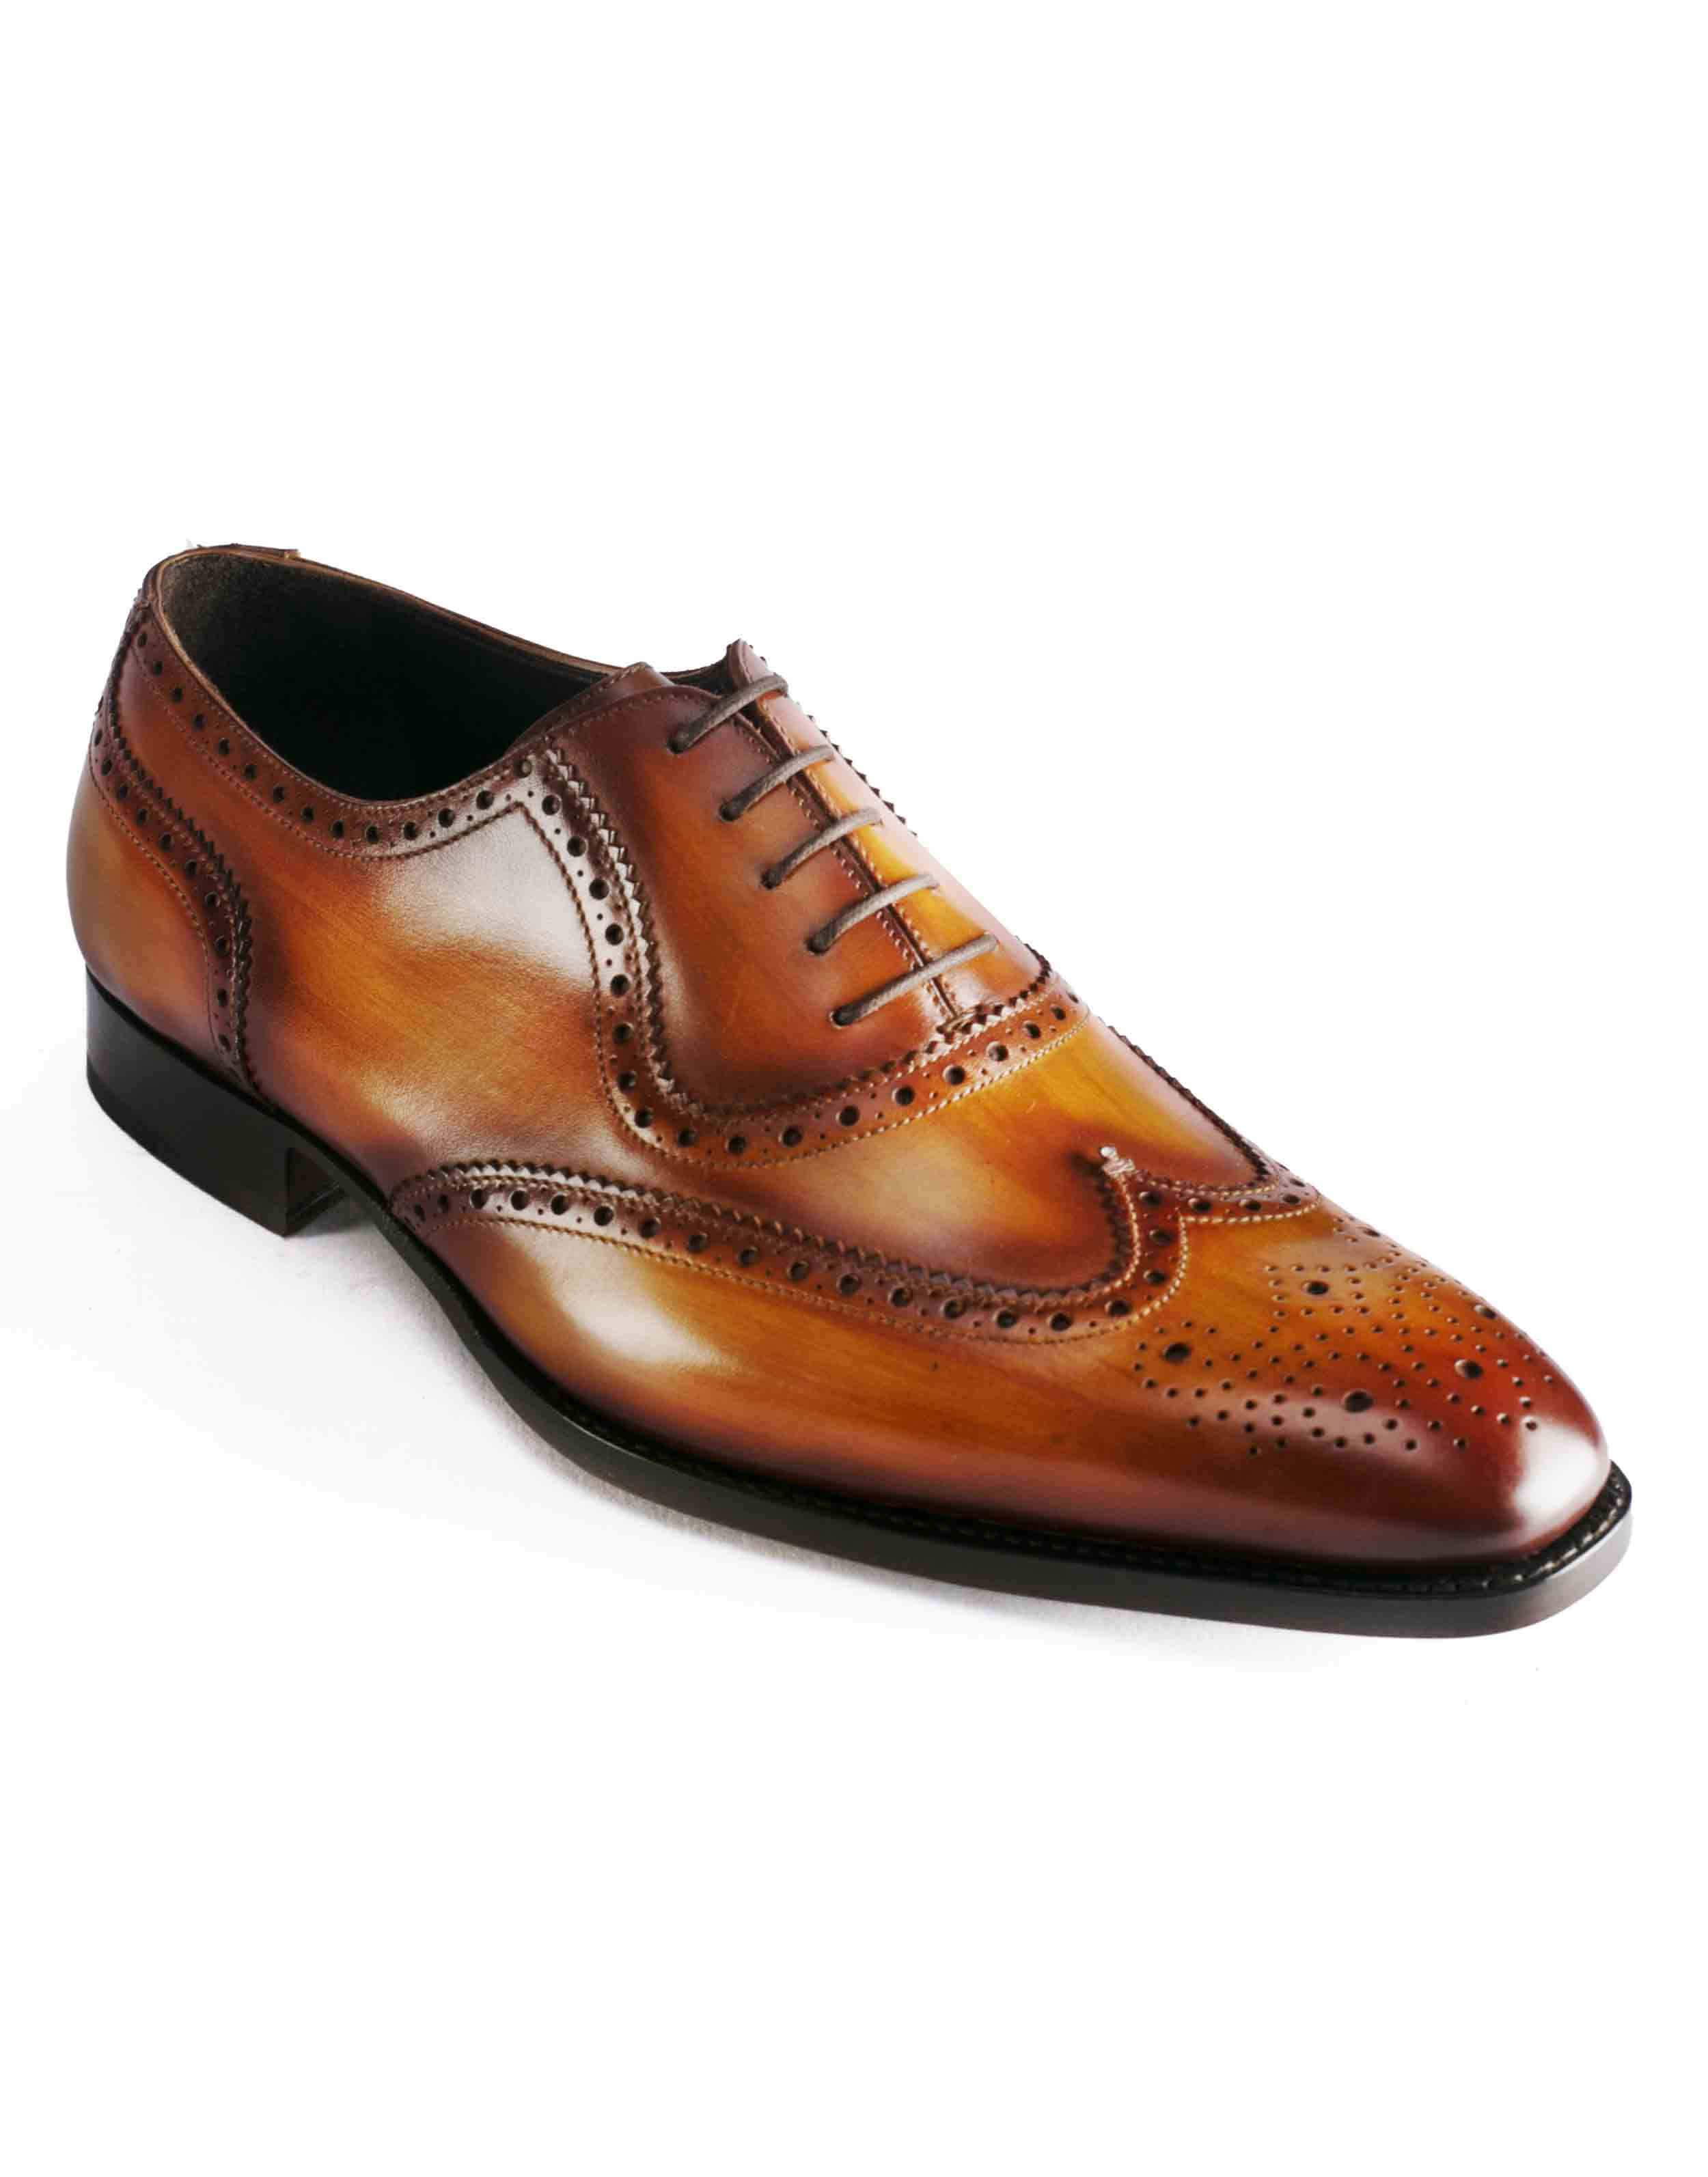 BROWN WINGTIP BROGUE OXFORD2